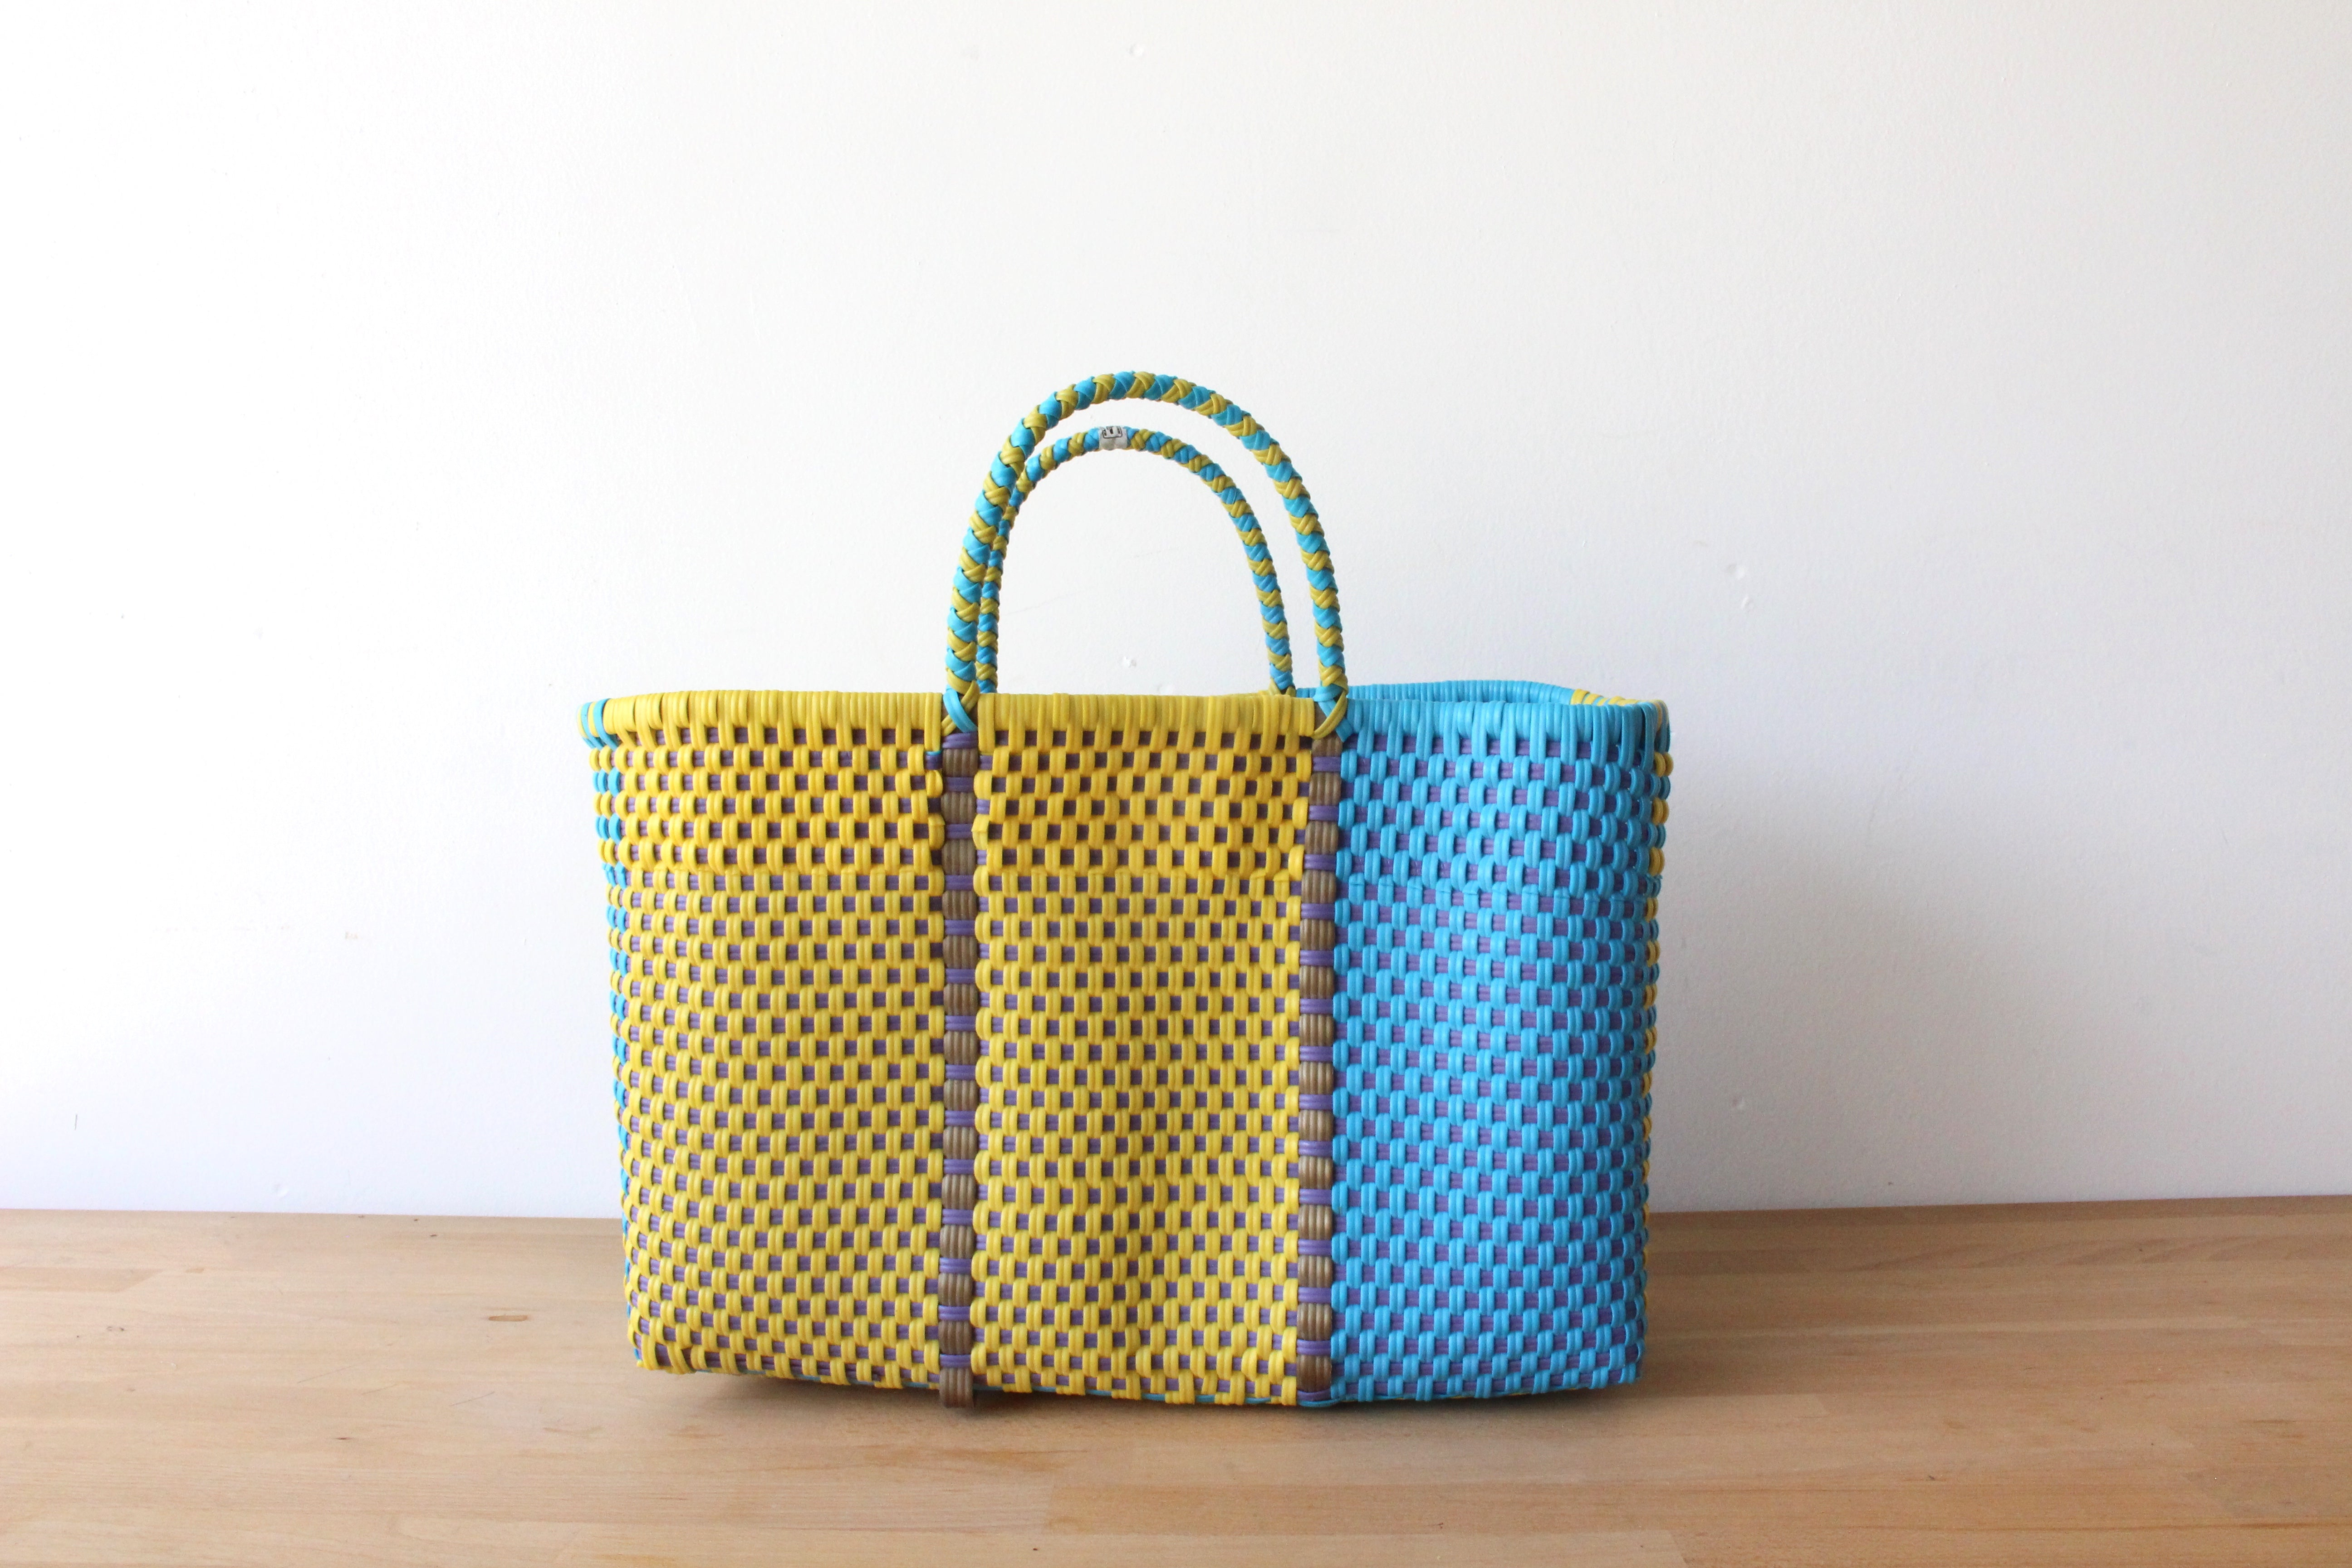 Blue & Yellow MexiMexi Tote Bag